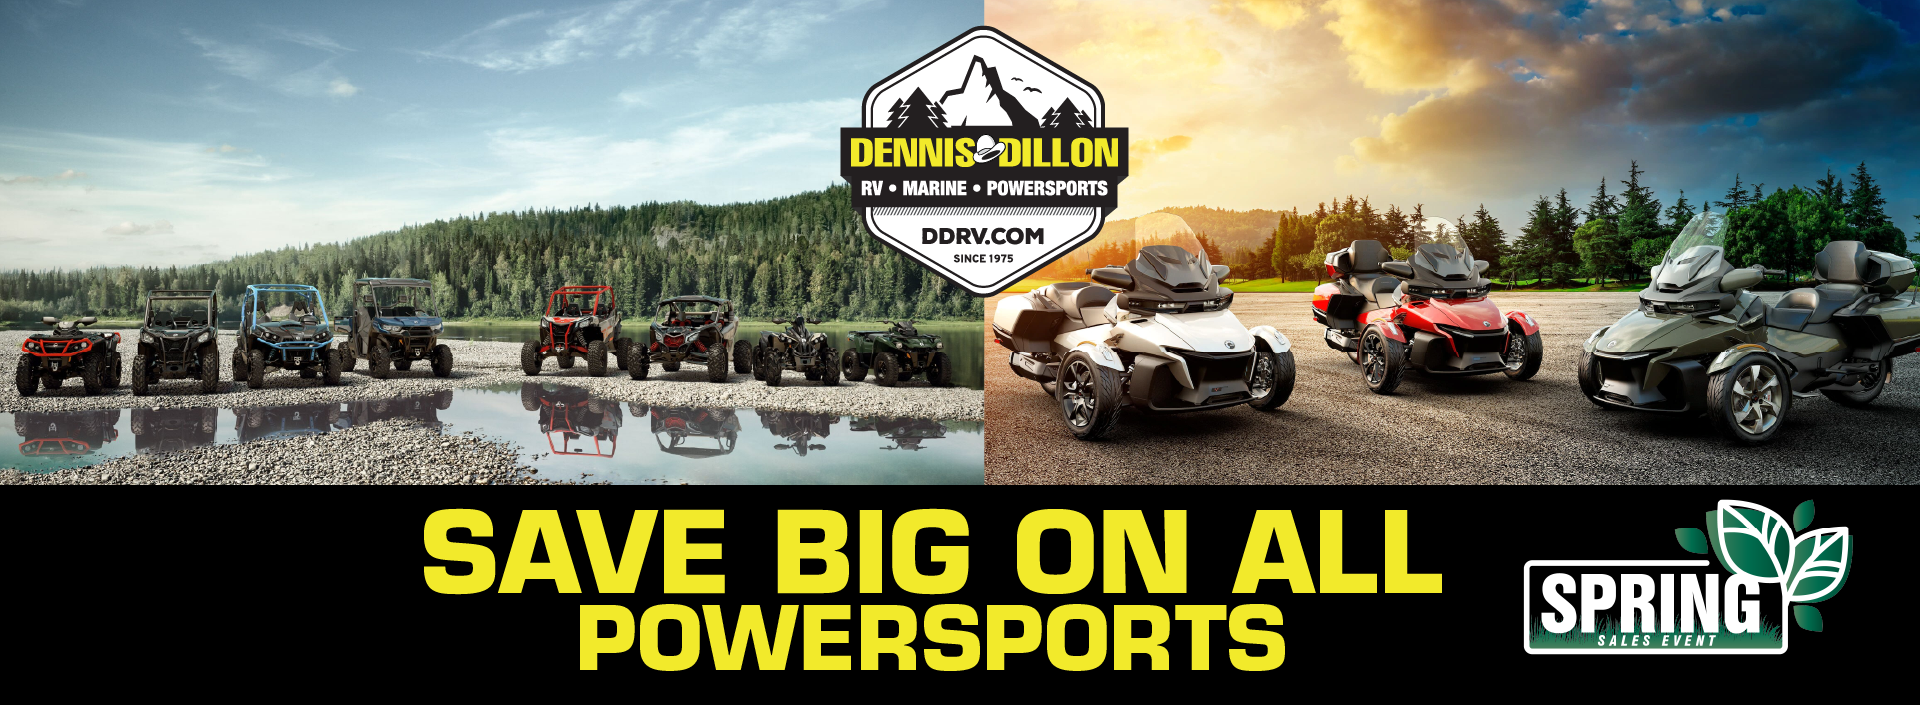 save big on all powersports